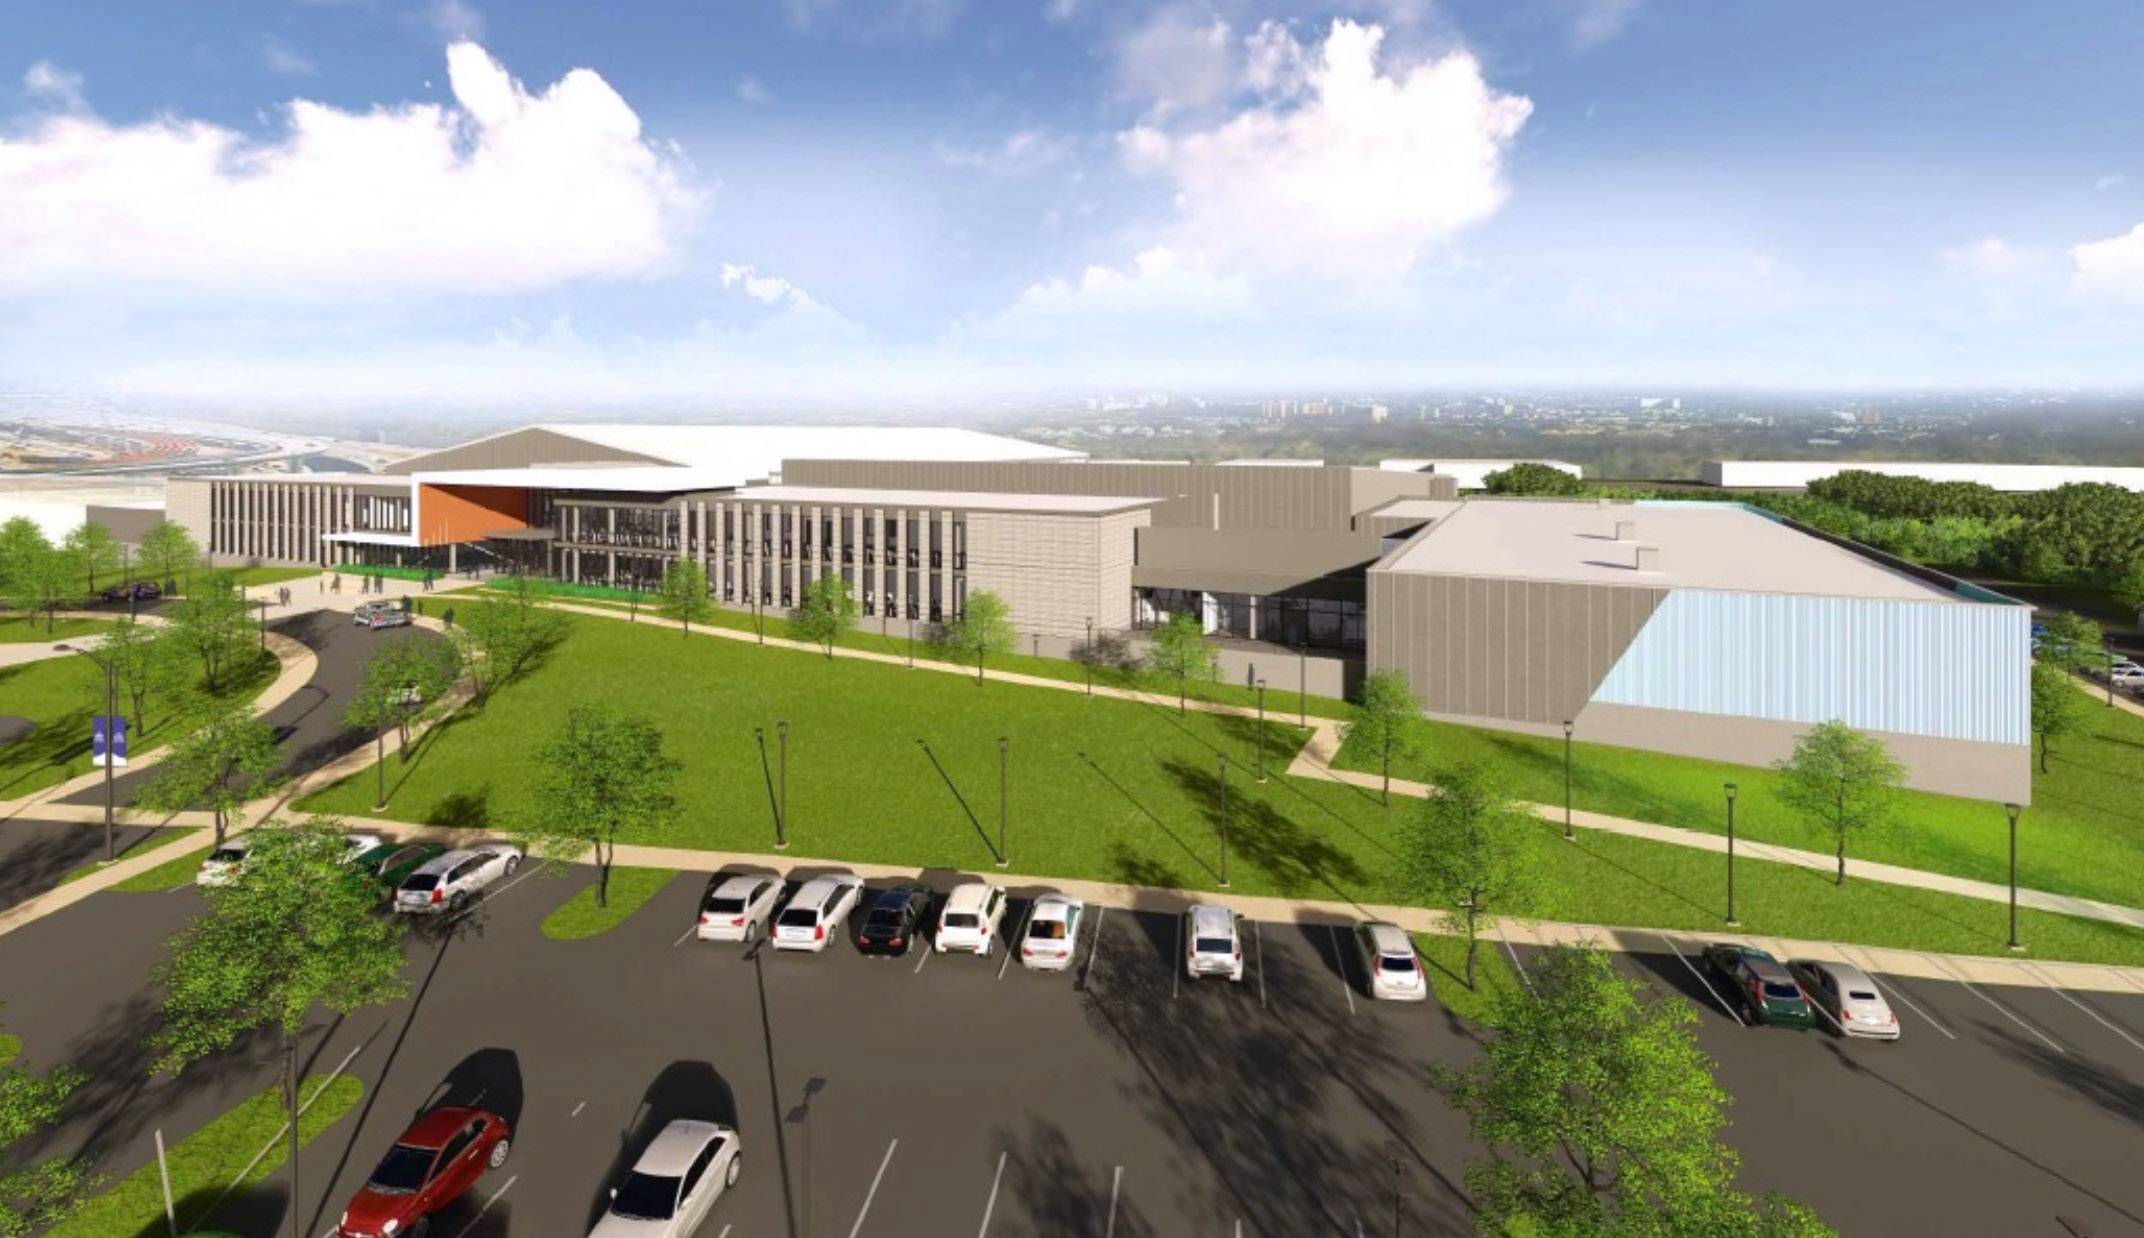 An architectural drawing of the St. James athletic facility that's been proposed for Lincolnshire.